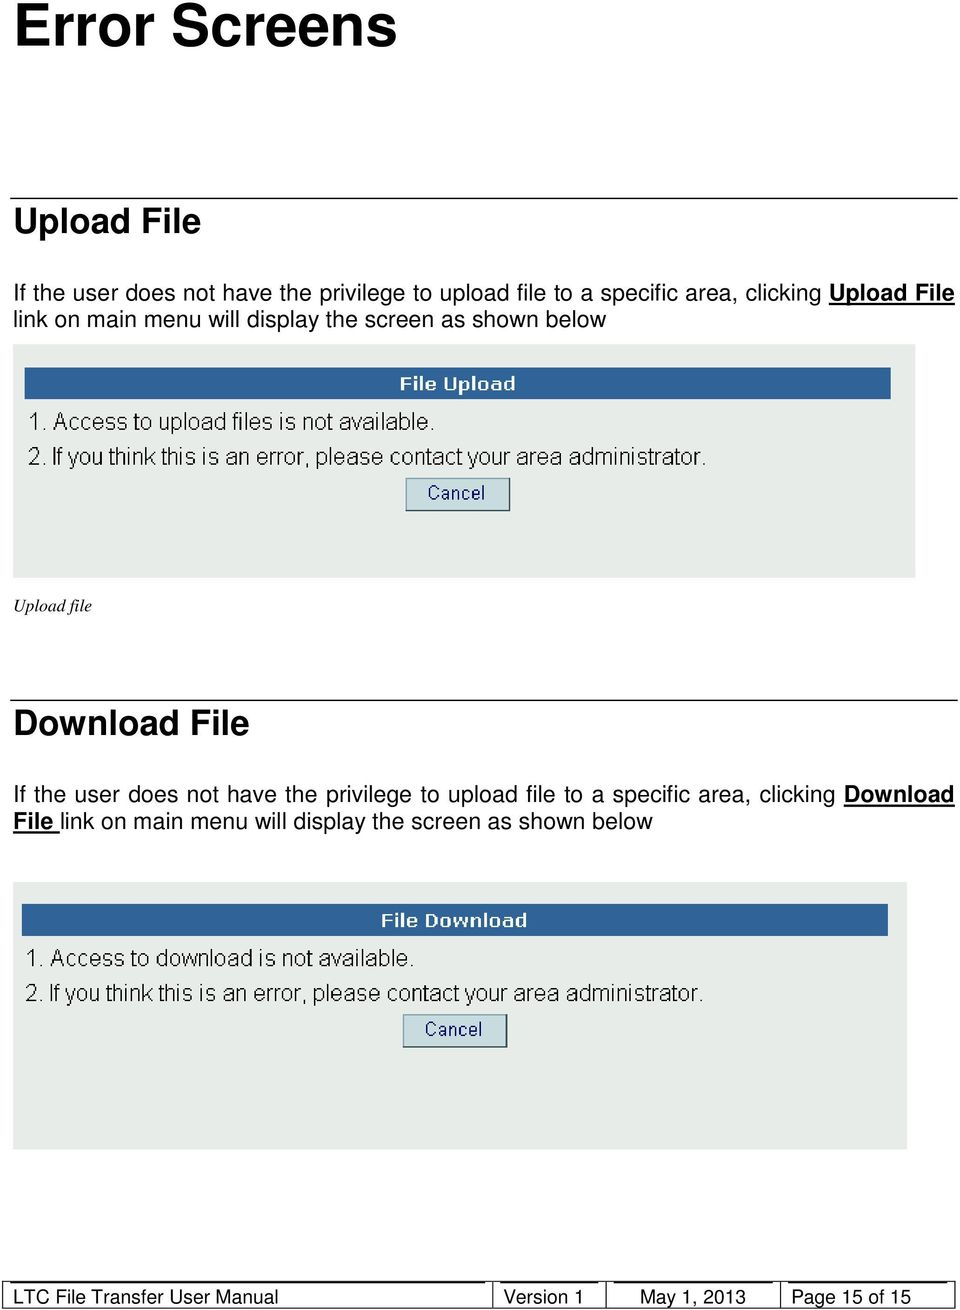 the user does not have the privilege to upload file to a specific area, clicking Download File link on